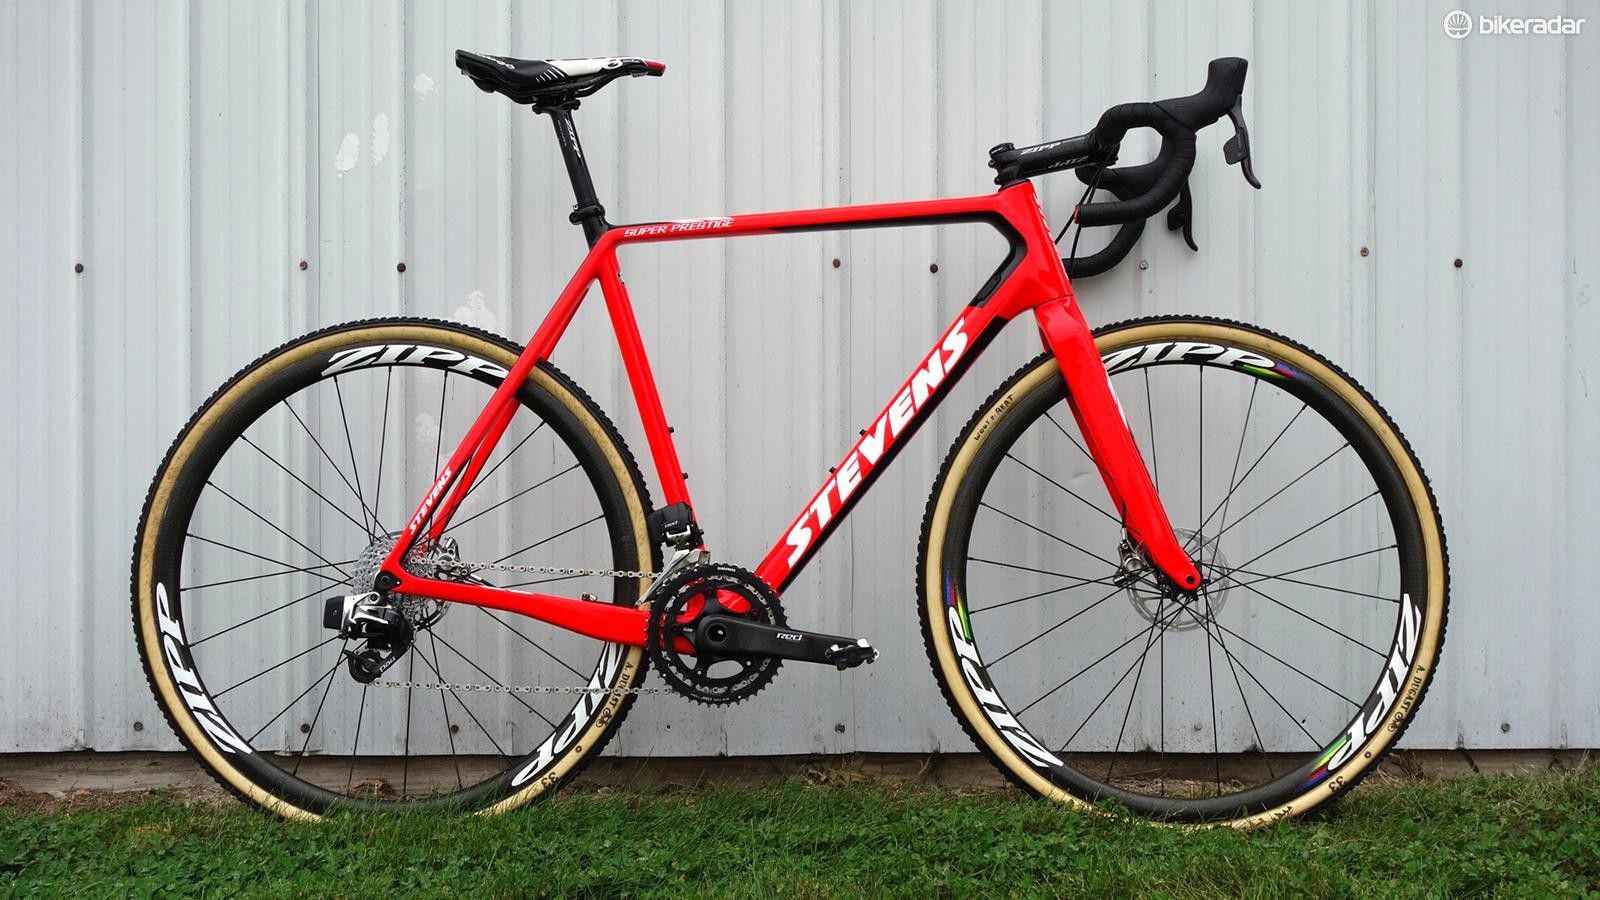 Wout van Aert's Stevens Super Prestige for the Jingle Cross World Cup